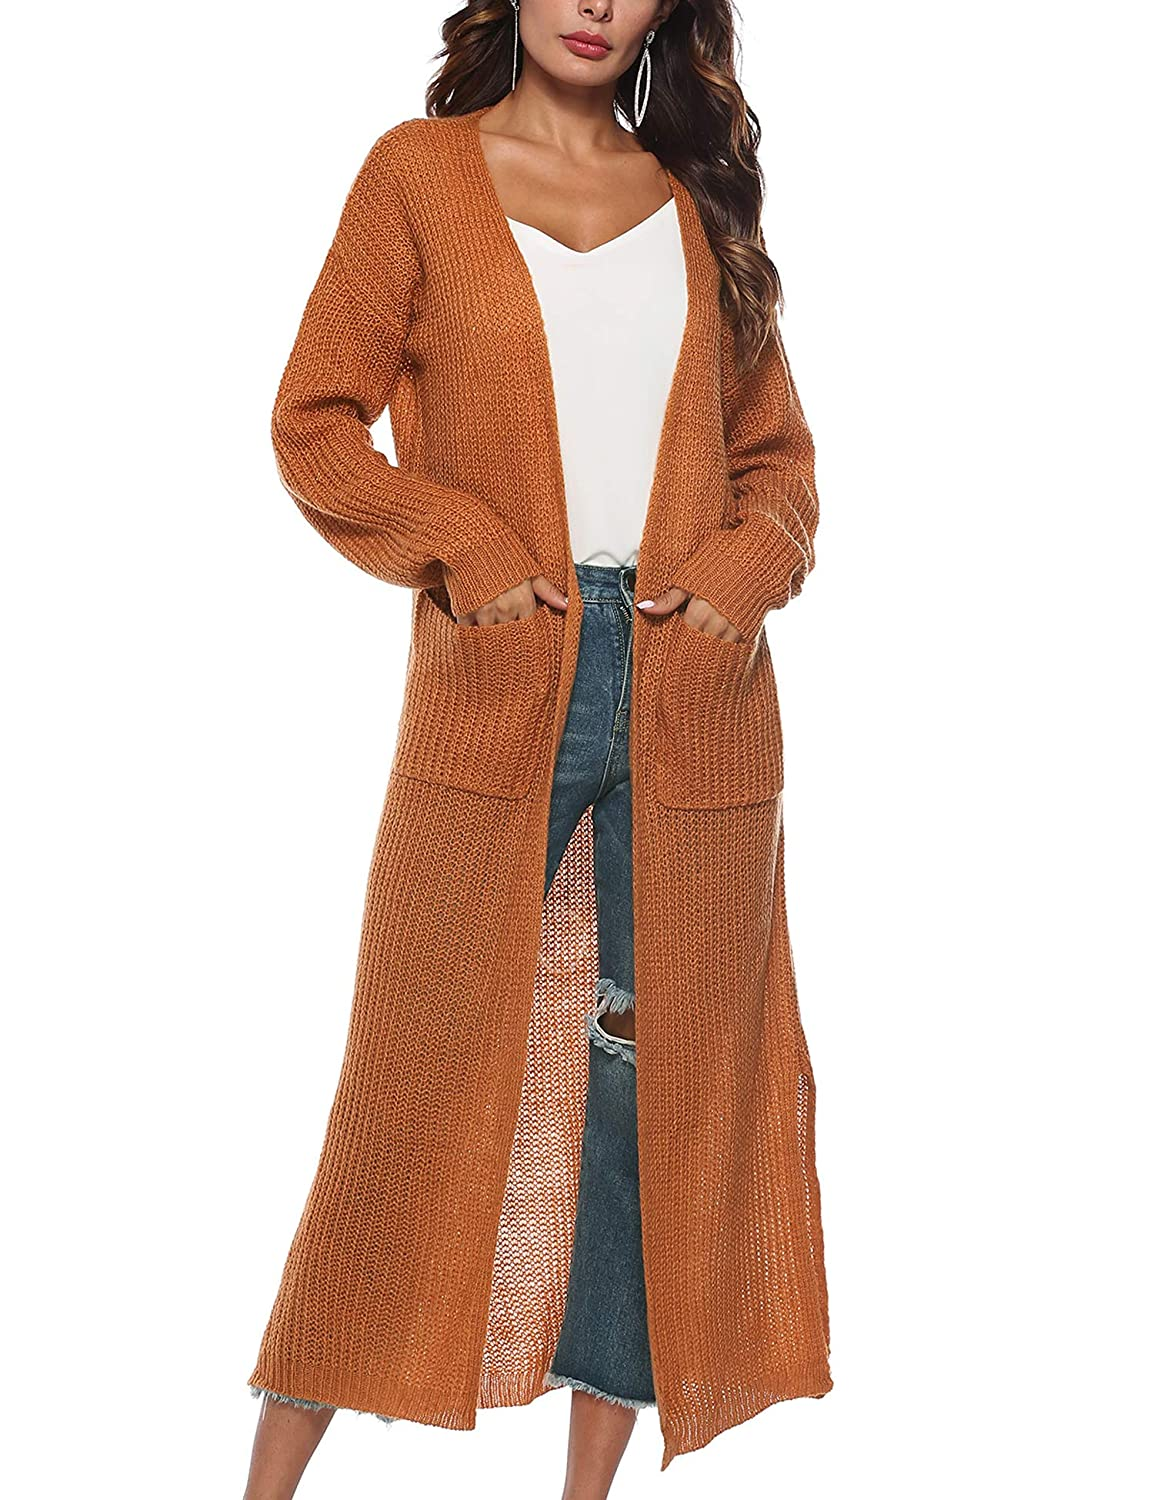 Blaward Women's Long Open Front Drape Lightweight Maxi Long Sleeve Split Cardigan Sweater with Pocket